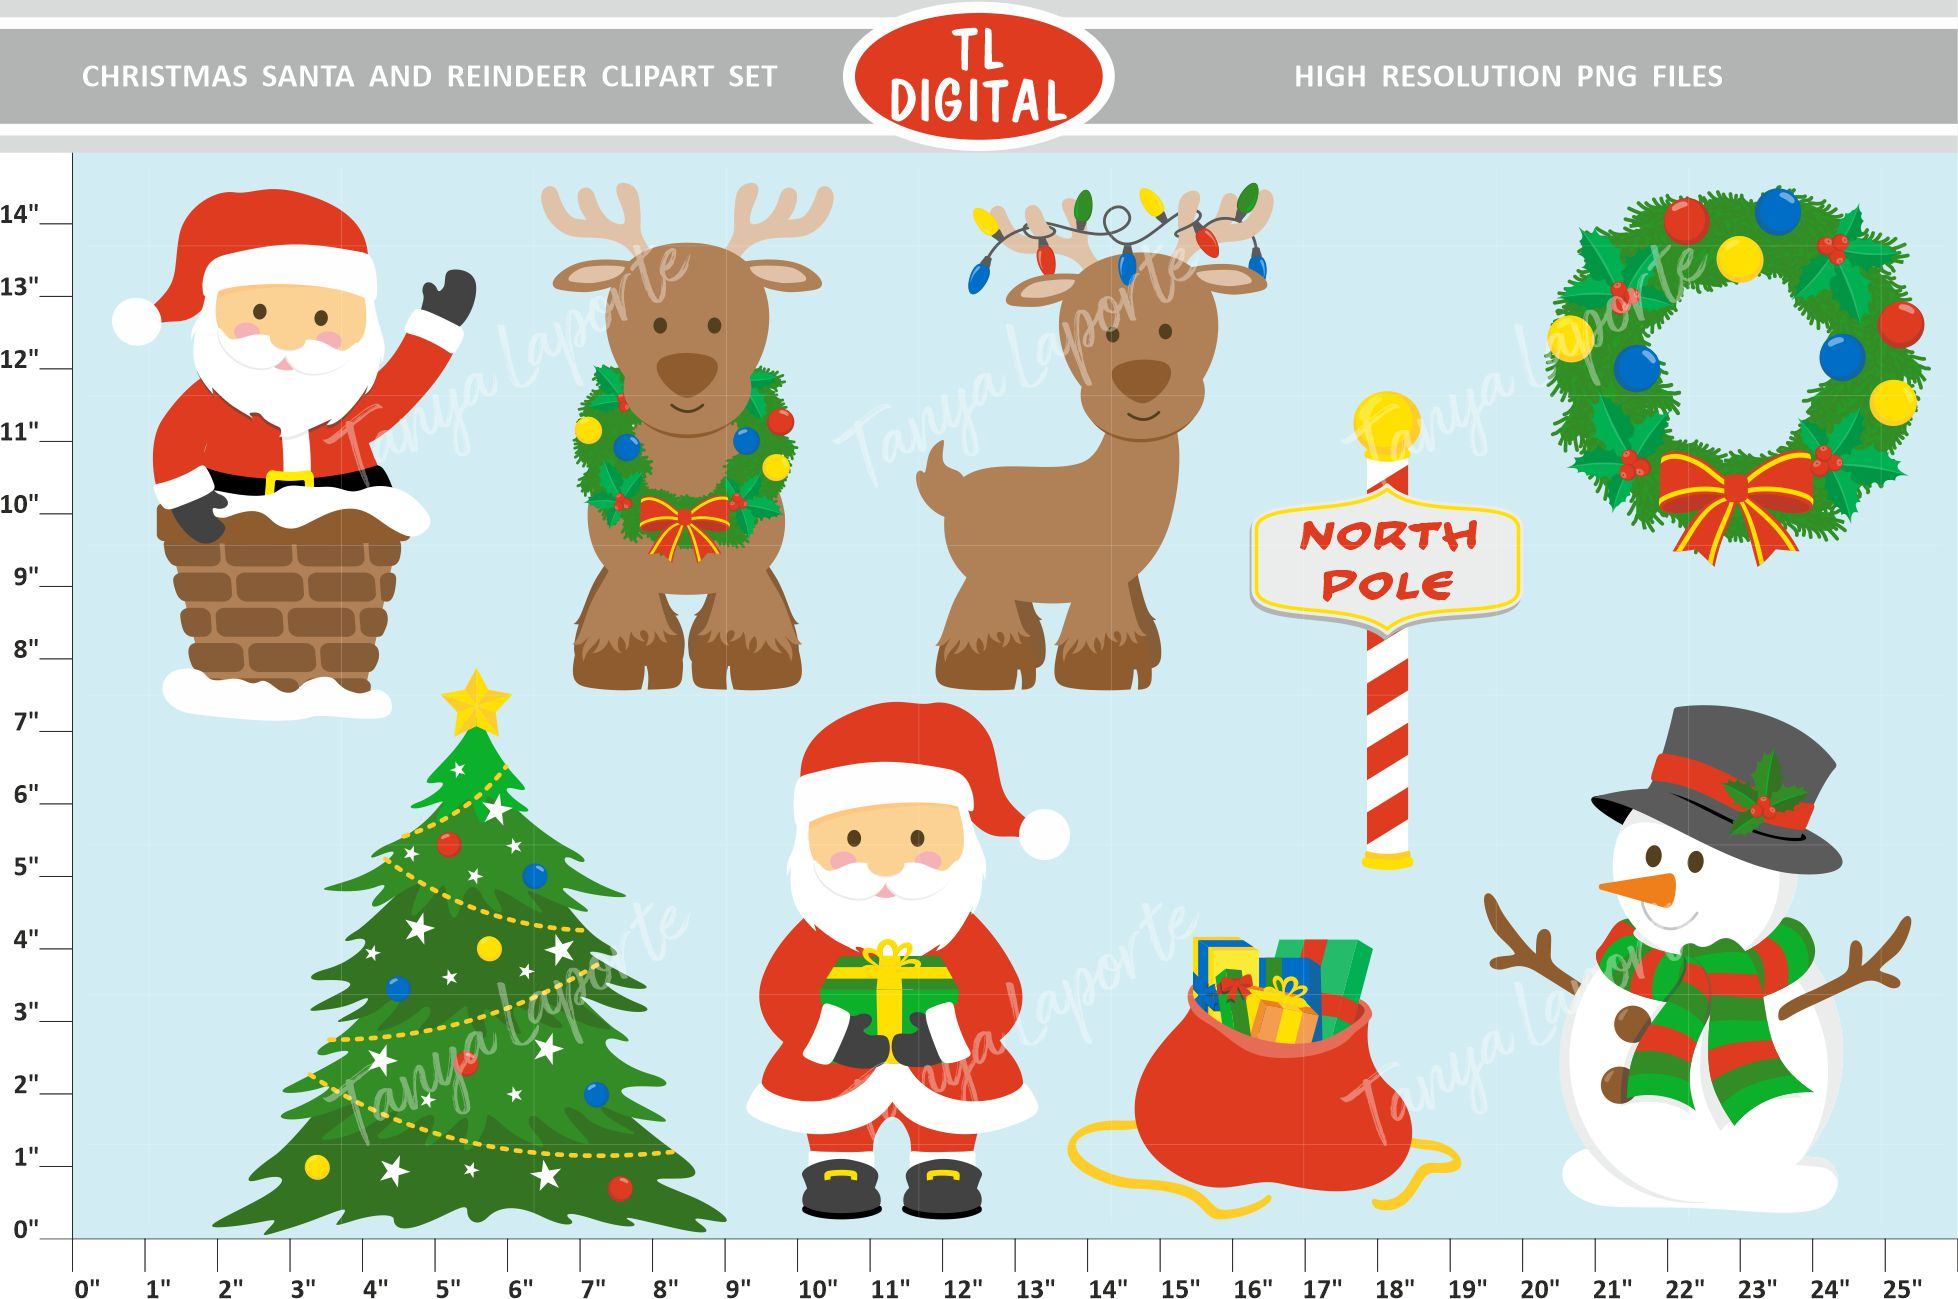 Download Free Christmas Santa And Reindeer Clipart Set Graphic By Tl Digital for Cricut Explore, Silhouette and other cutting machines.